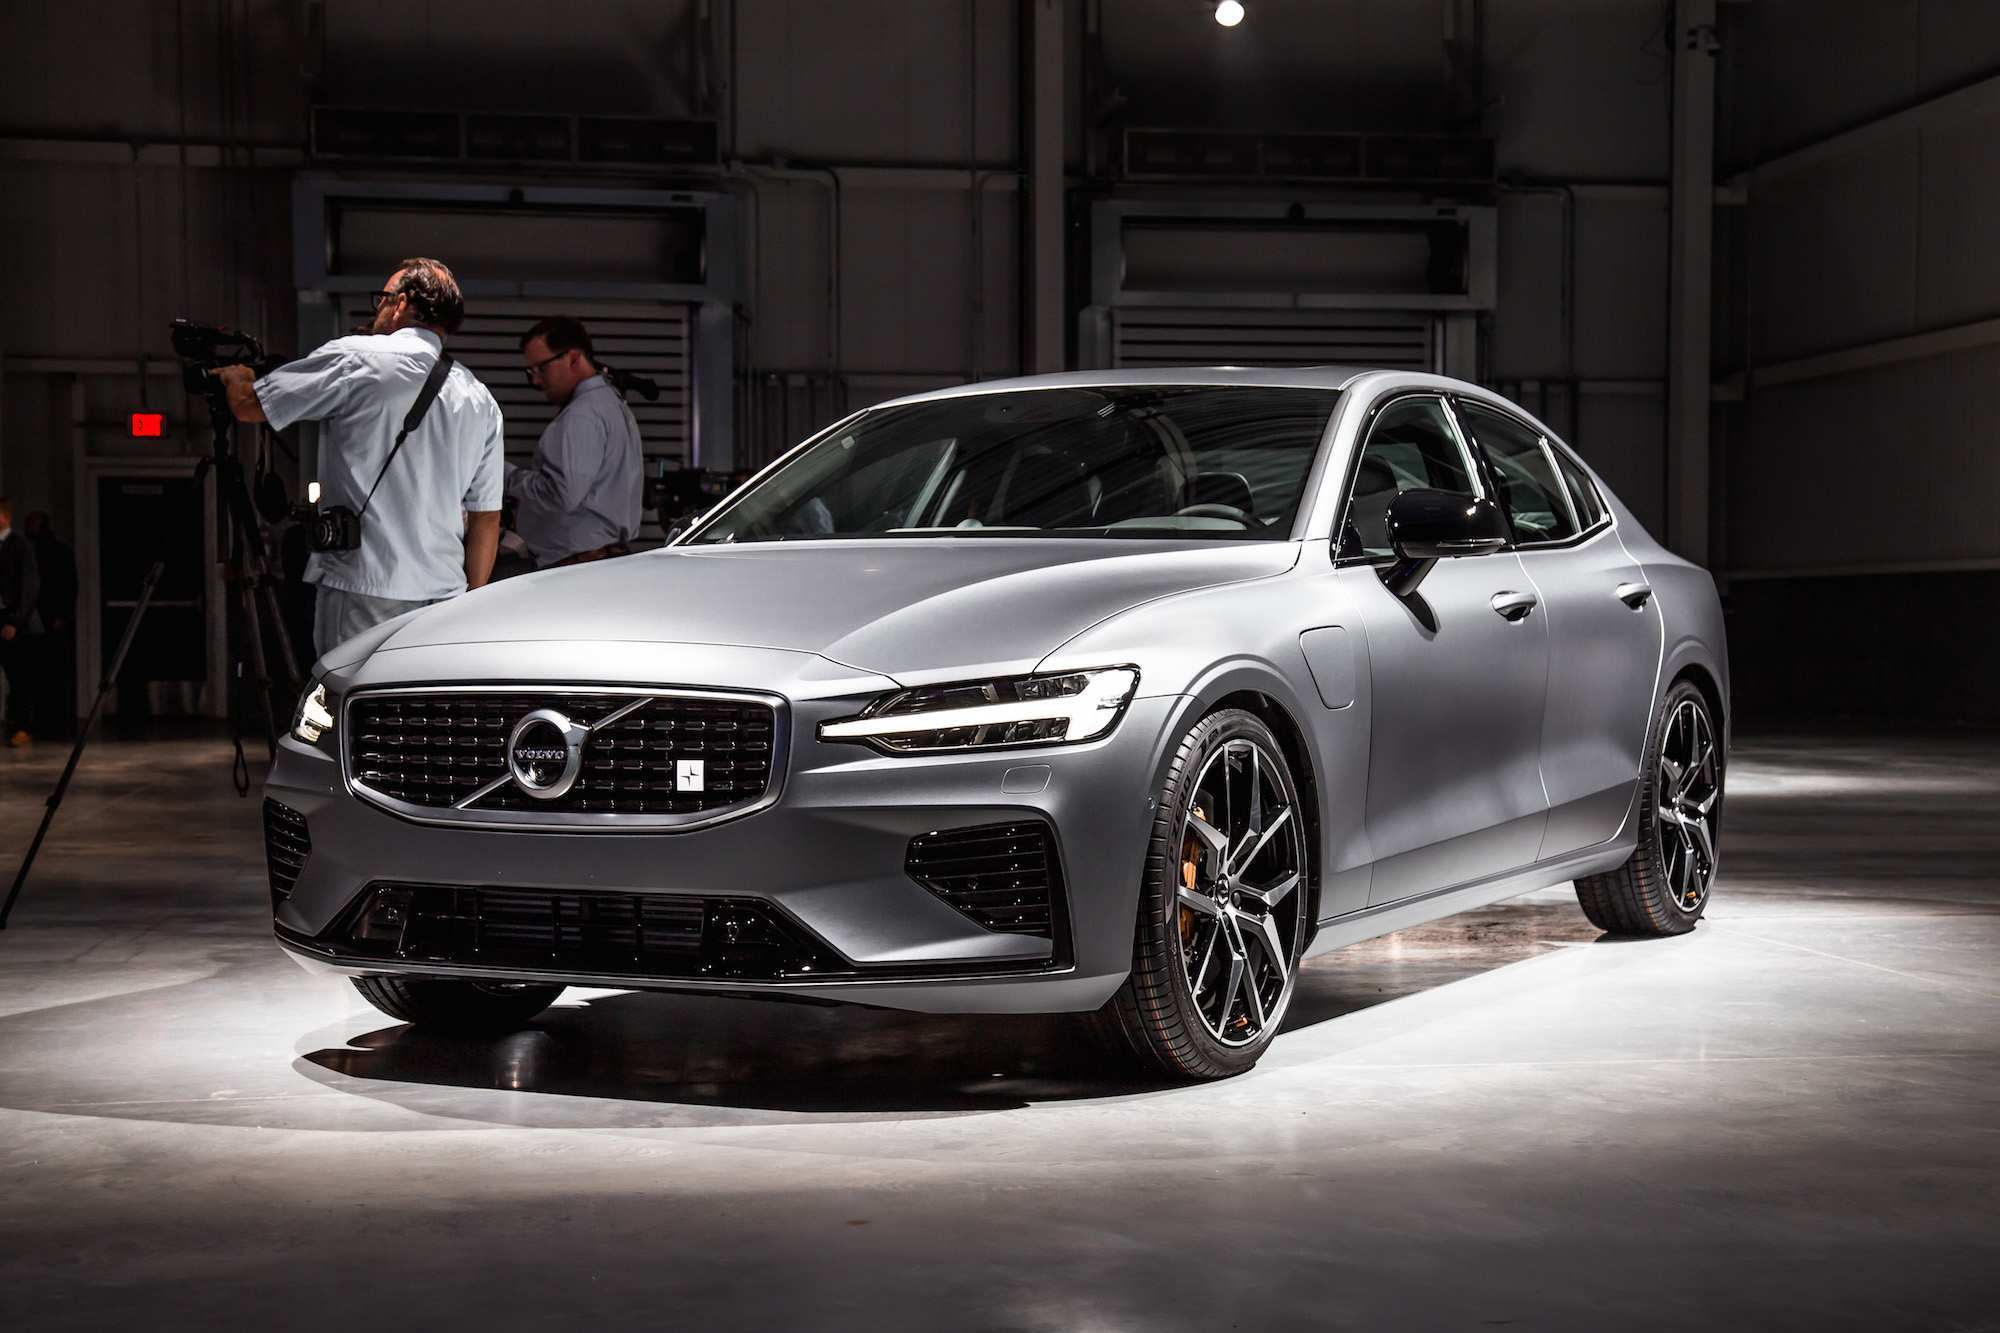 78 The 2019 Volvo S60 Polestar Images for 2019 Volvo S60 Polestar